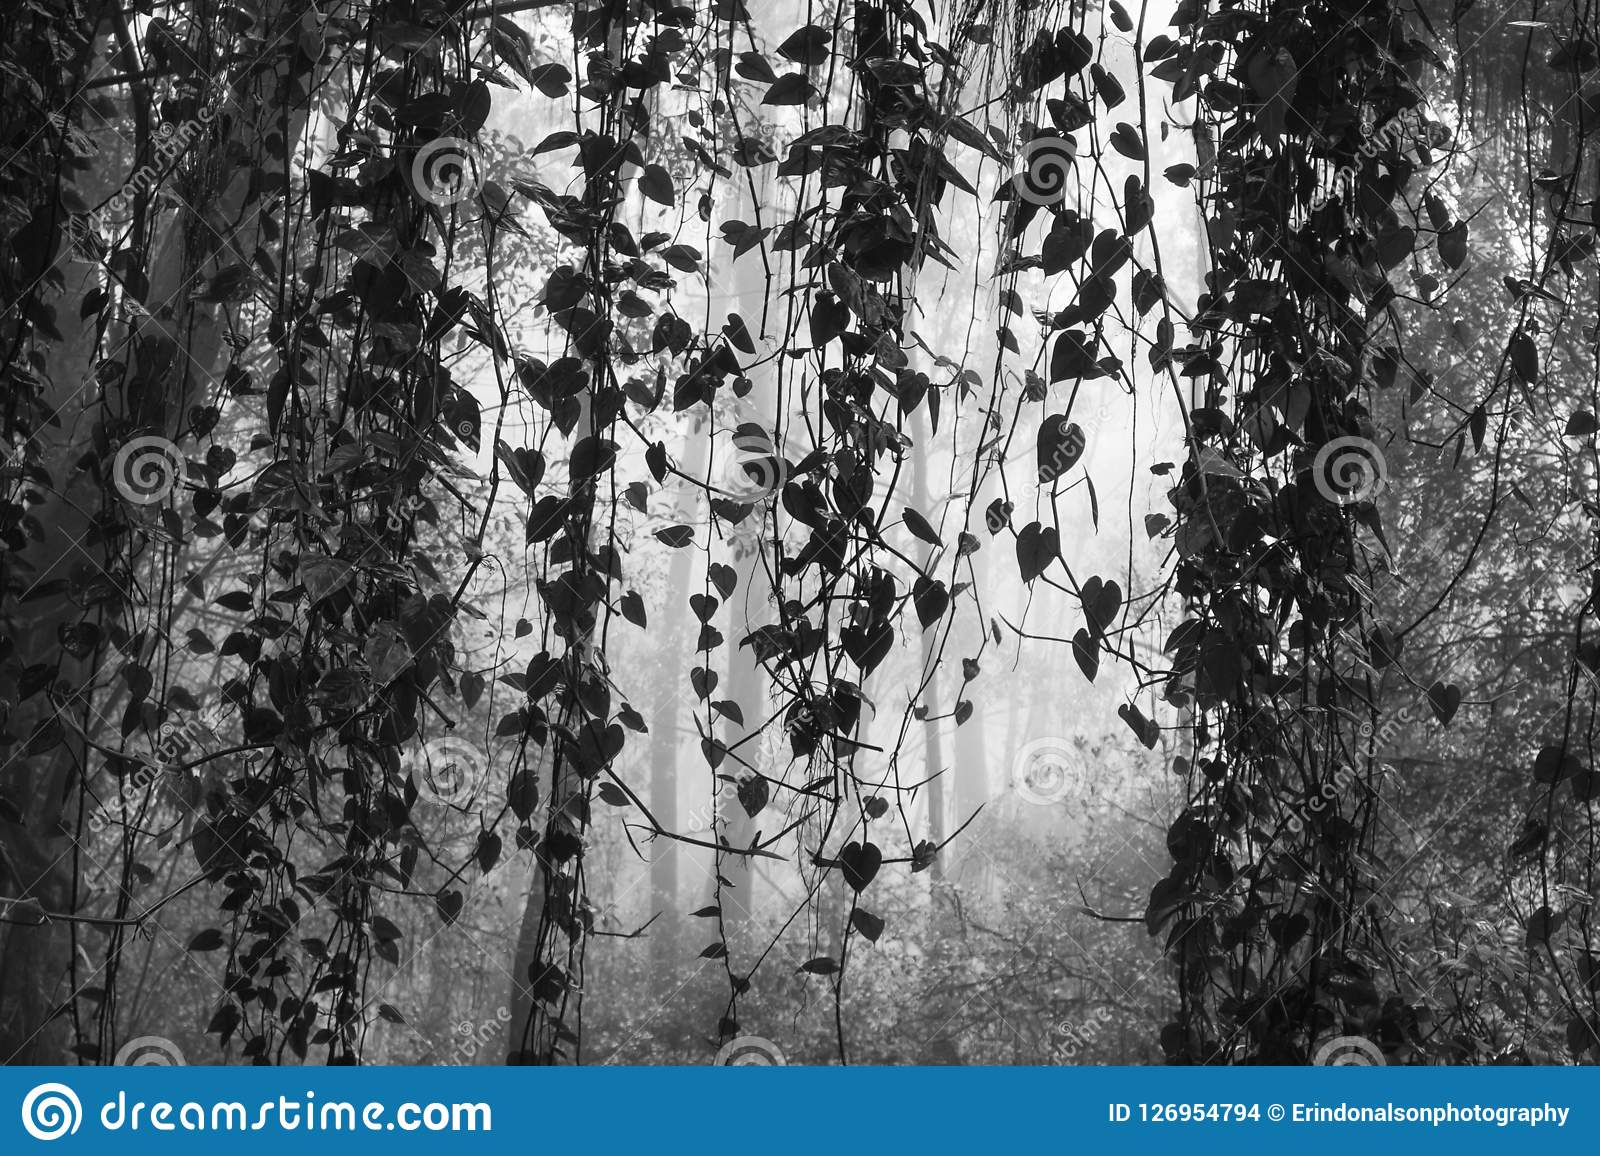 Black and white jungle vines with leaves hanging down against foggy forest background